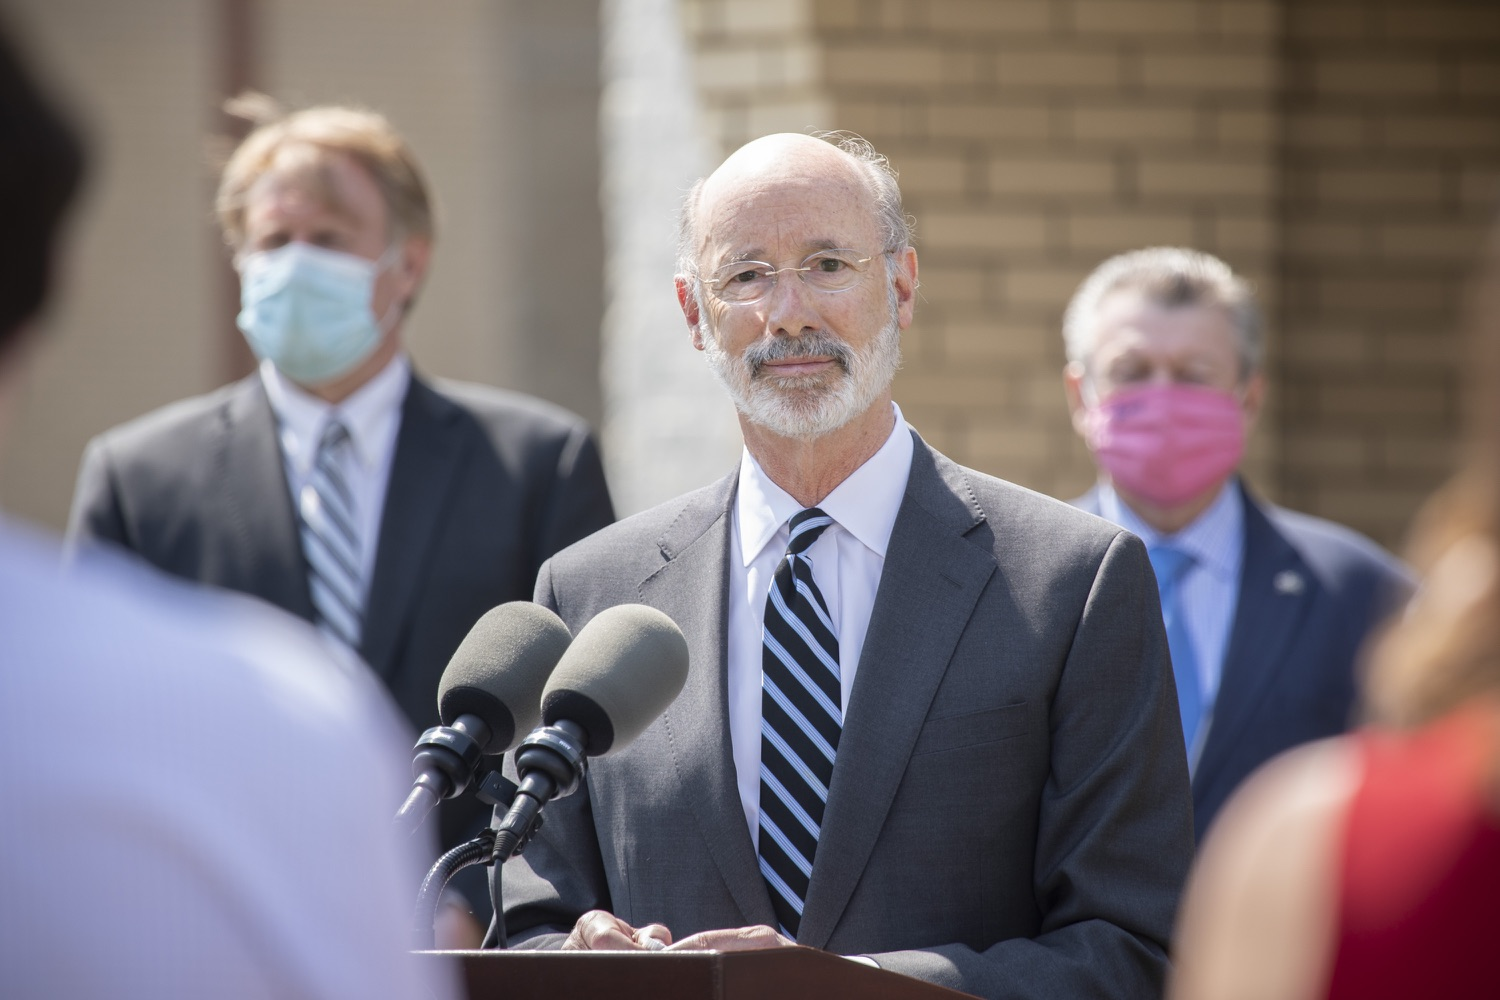 "<a href=""https://filesource.wostreaming.net/commonwealthofpa/photo/18666_gov_vaccines_dz_013.jpg"" target=""_blank"">⇣ Download Photo<br></a>Pennsylvania Governor Tom Wolf speaking to the press.  As Pennsylvanias vaccination plan accelerates and more than a third of the states eligible population is vaccinated, Governor Tom Wolf today visited a new vaccination clinic in McKeesport to talk about vaccine equity and progress.  McKeesport, PA  April 7, 2021"